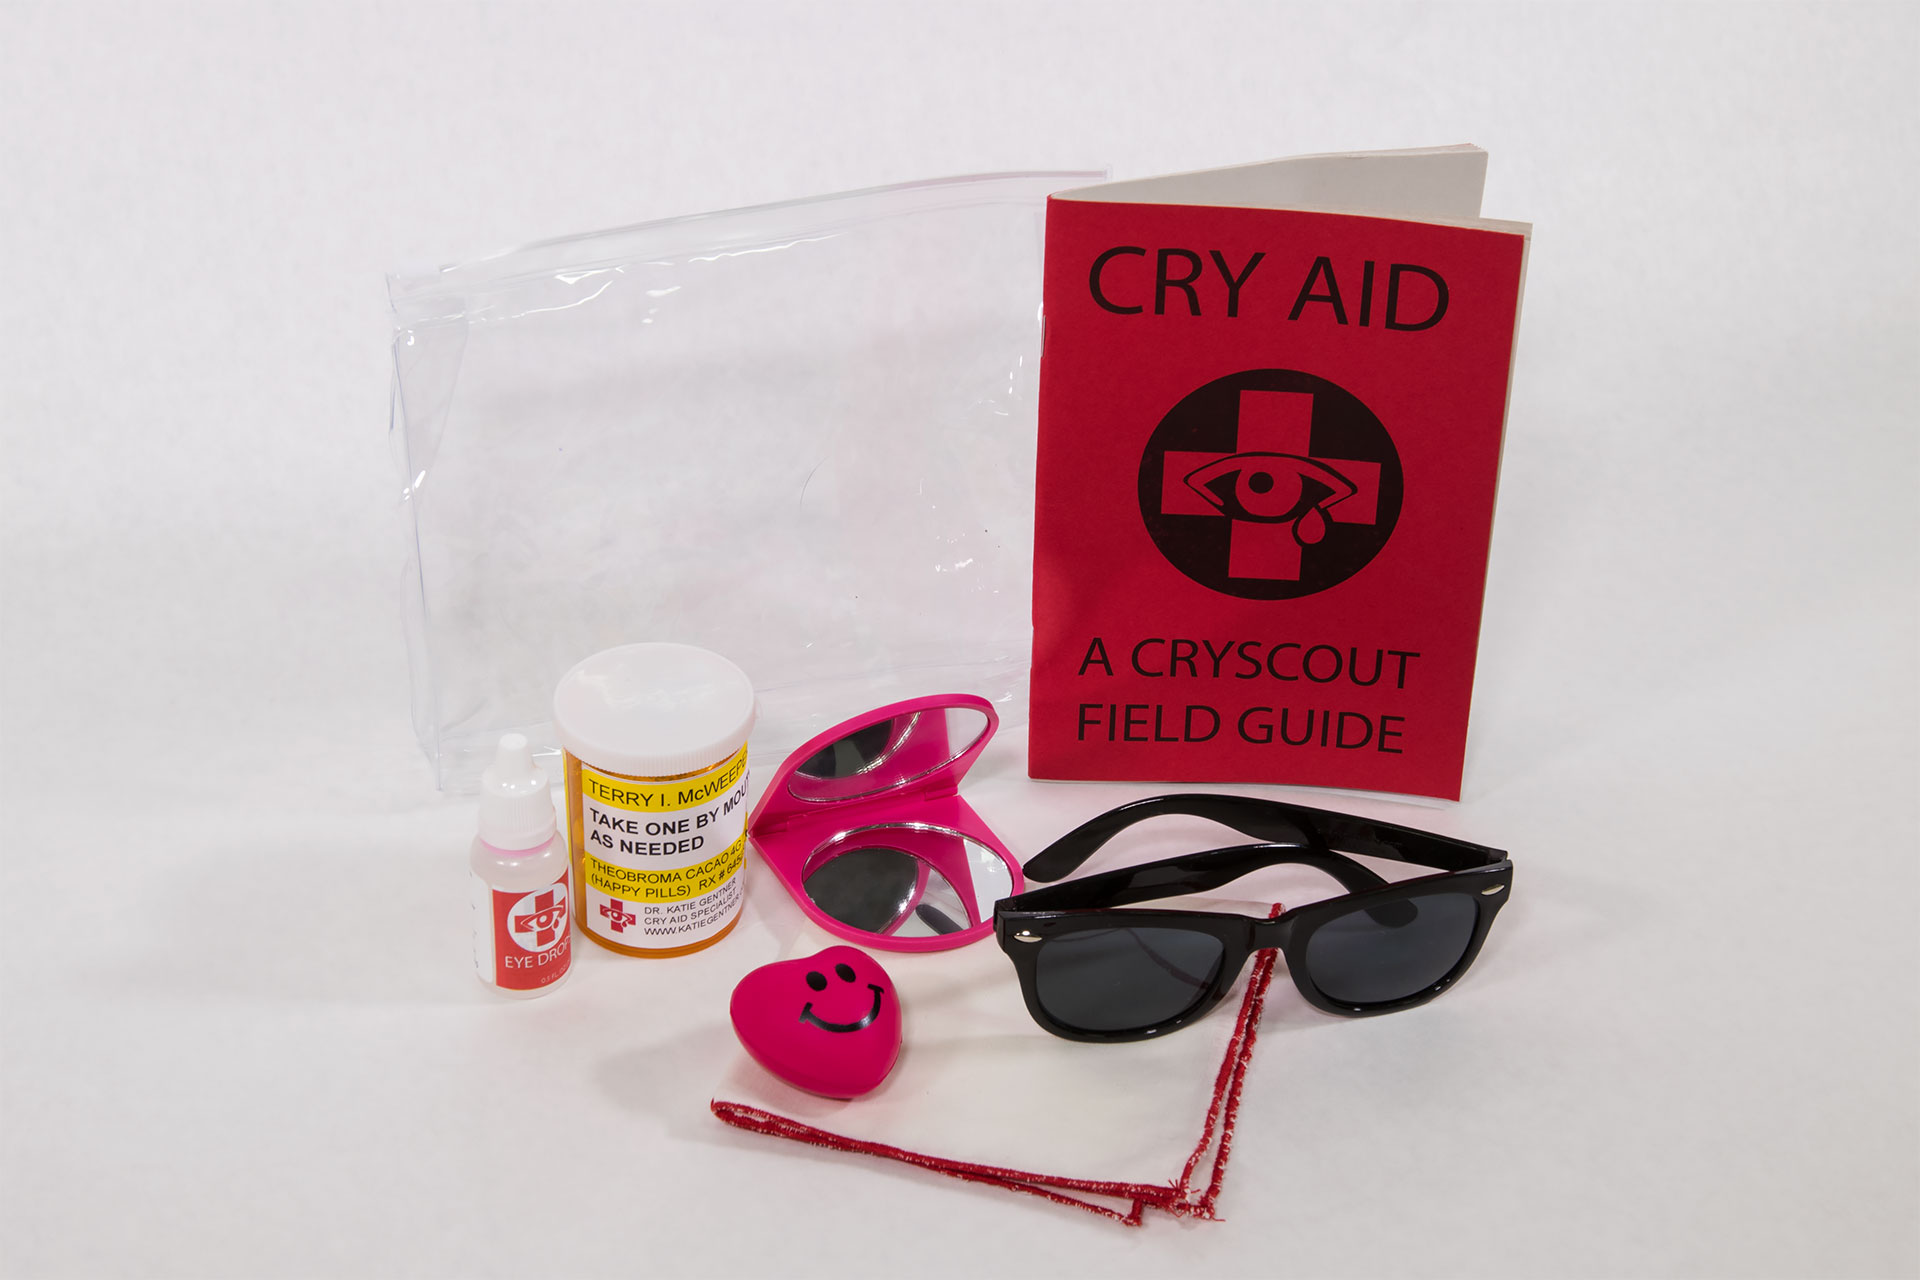 "Cry Aid Kit   Cry Aid Field Guide, hankie, happy pills, eye drops, hand mirror, sunglasses, stress ball, carrying case.  6"" x 7.5"" x 2""  2017   $29.99   Available on Etsy"